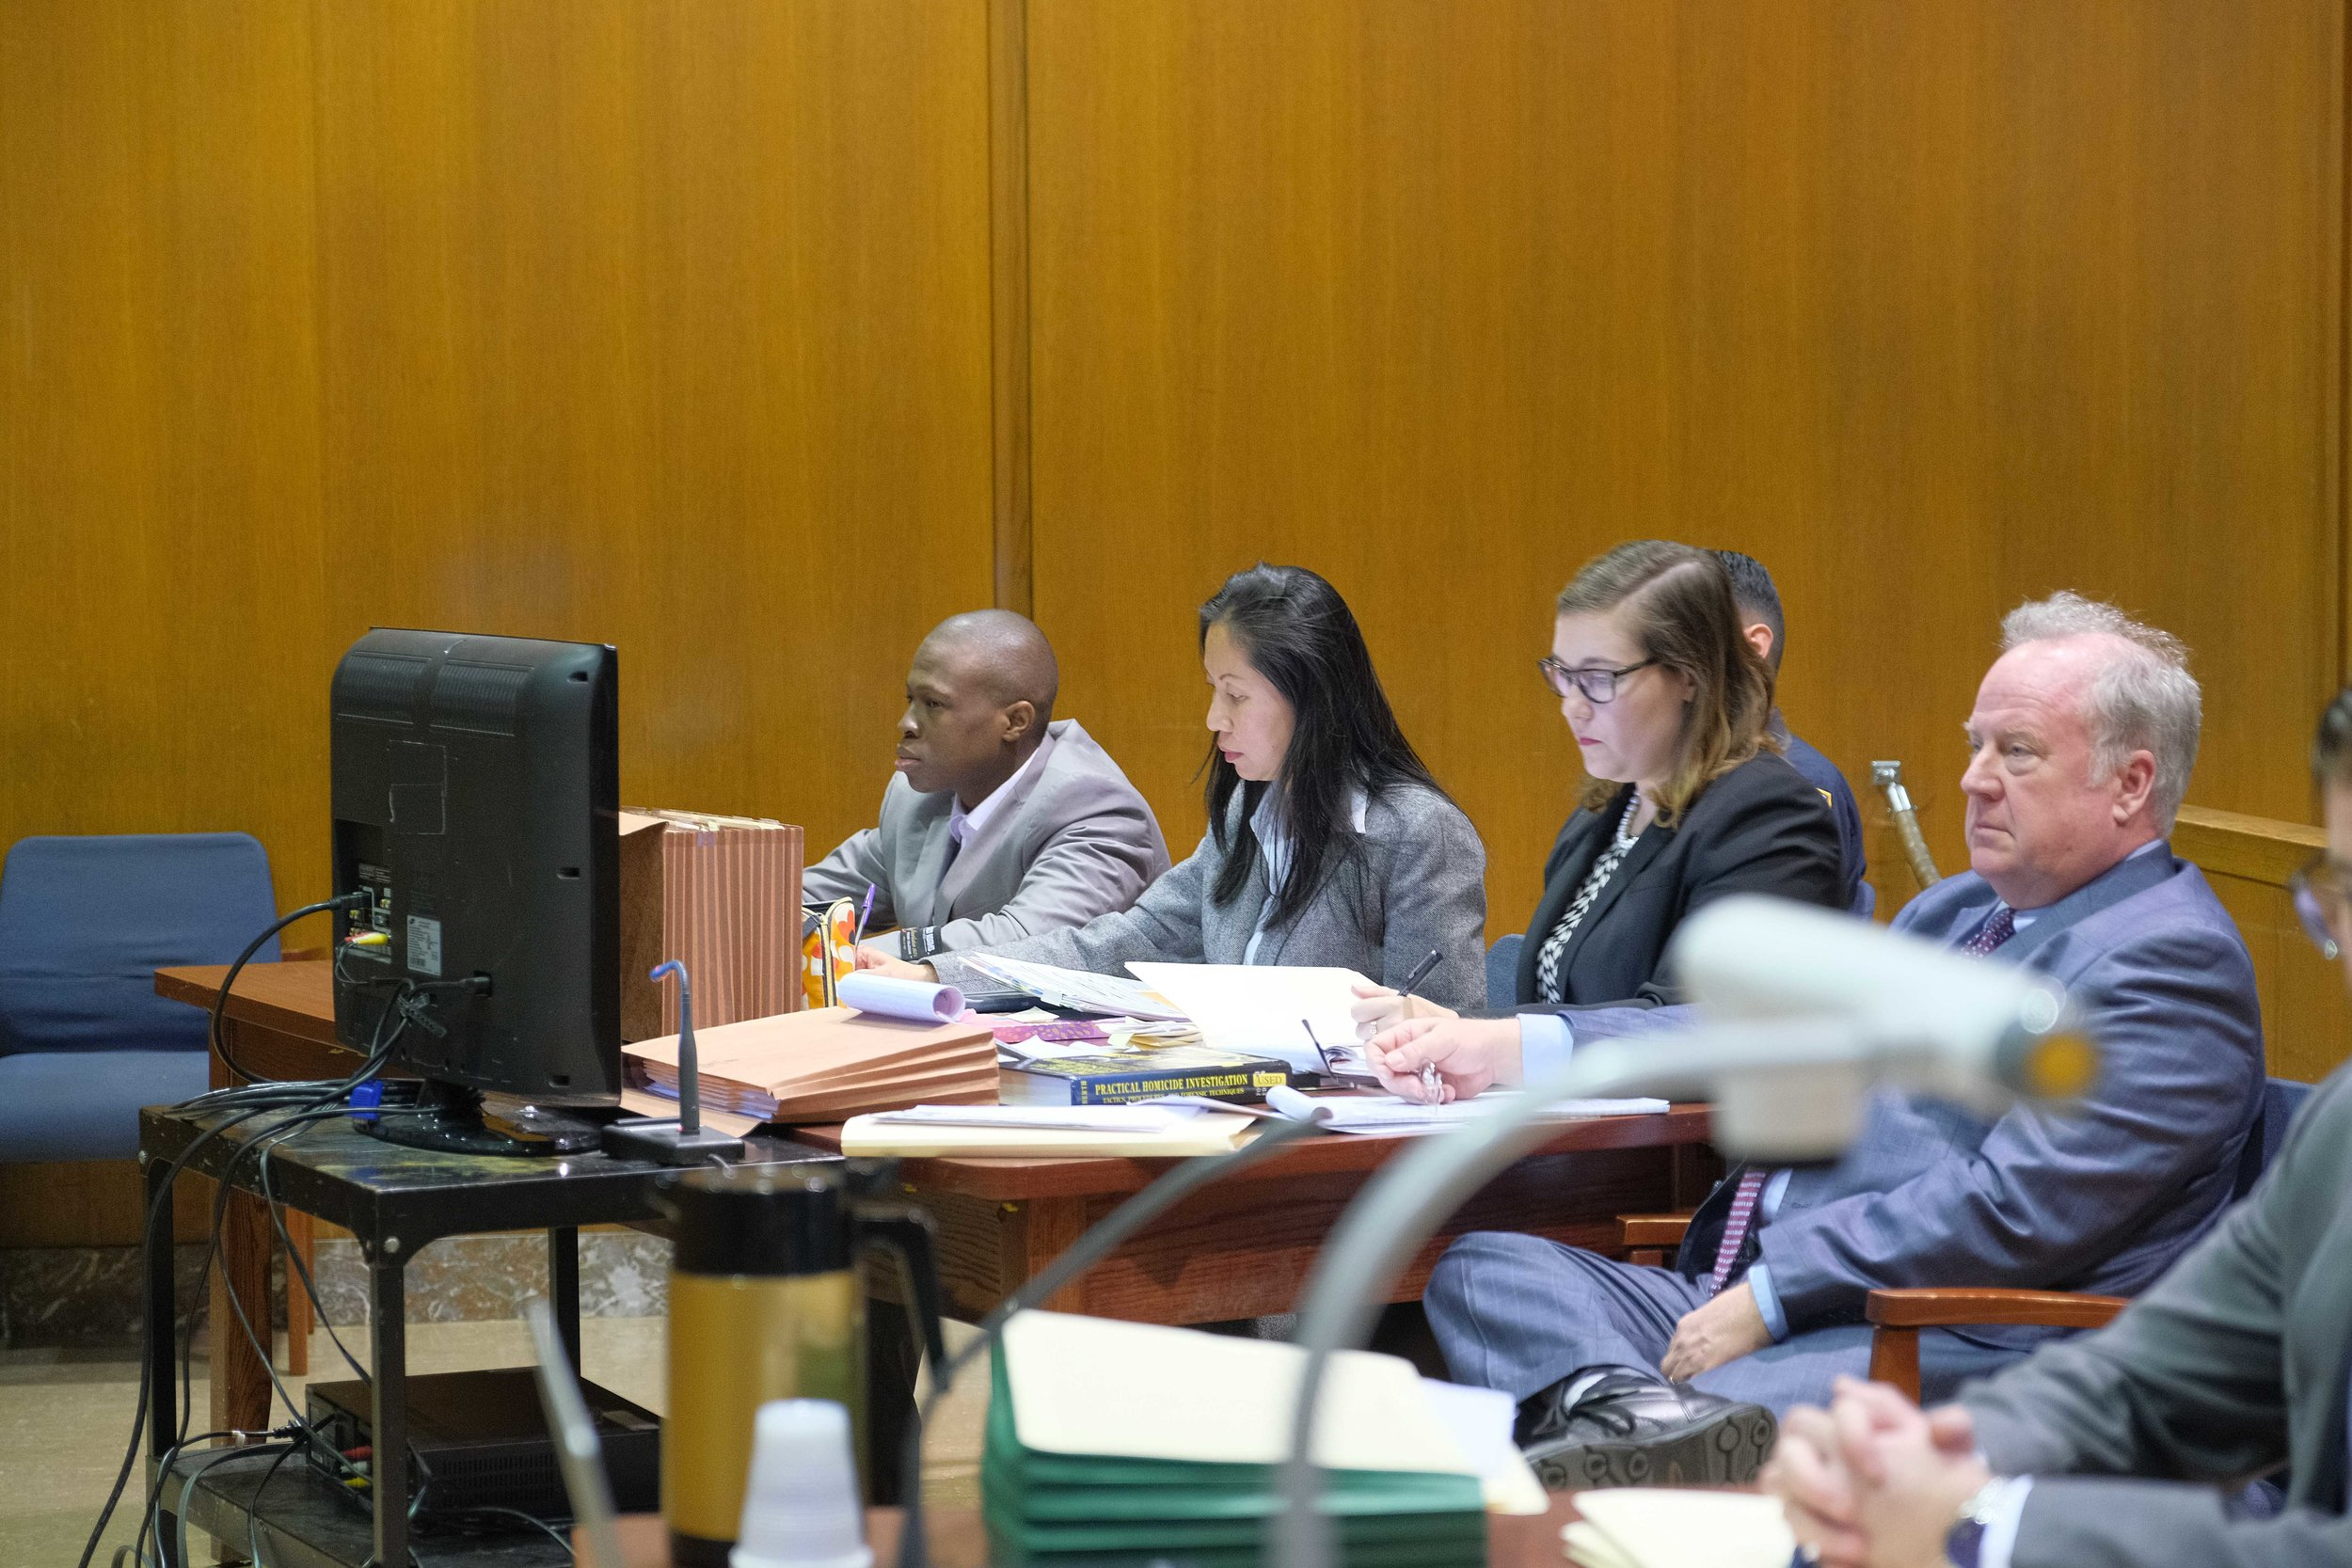 Chanel Lewis (left) was convicted of first-degree murder earlier this month. He sits with his defense attorneys during his first trial in November 2018. Pool photo by Curtis Means, file